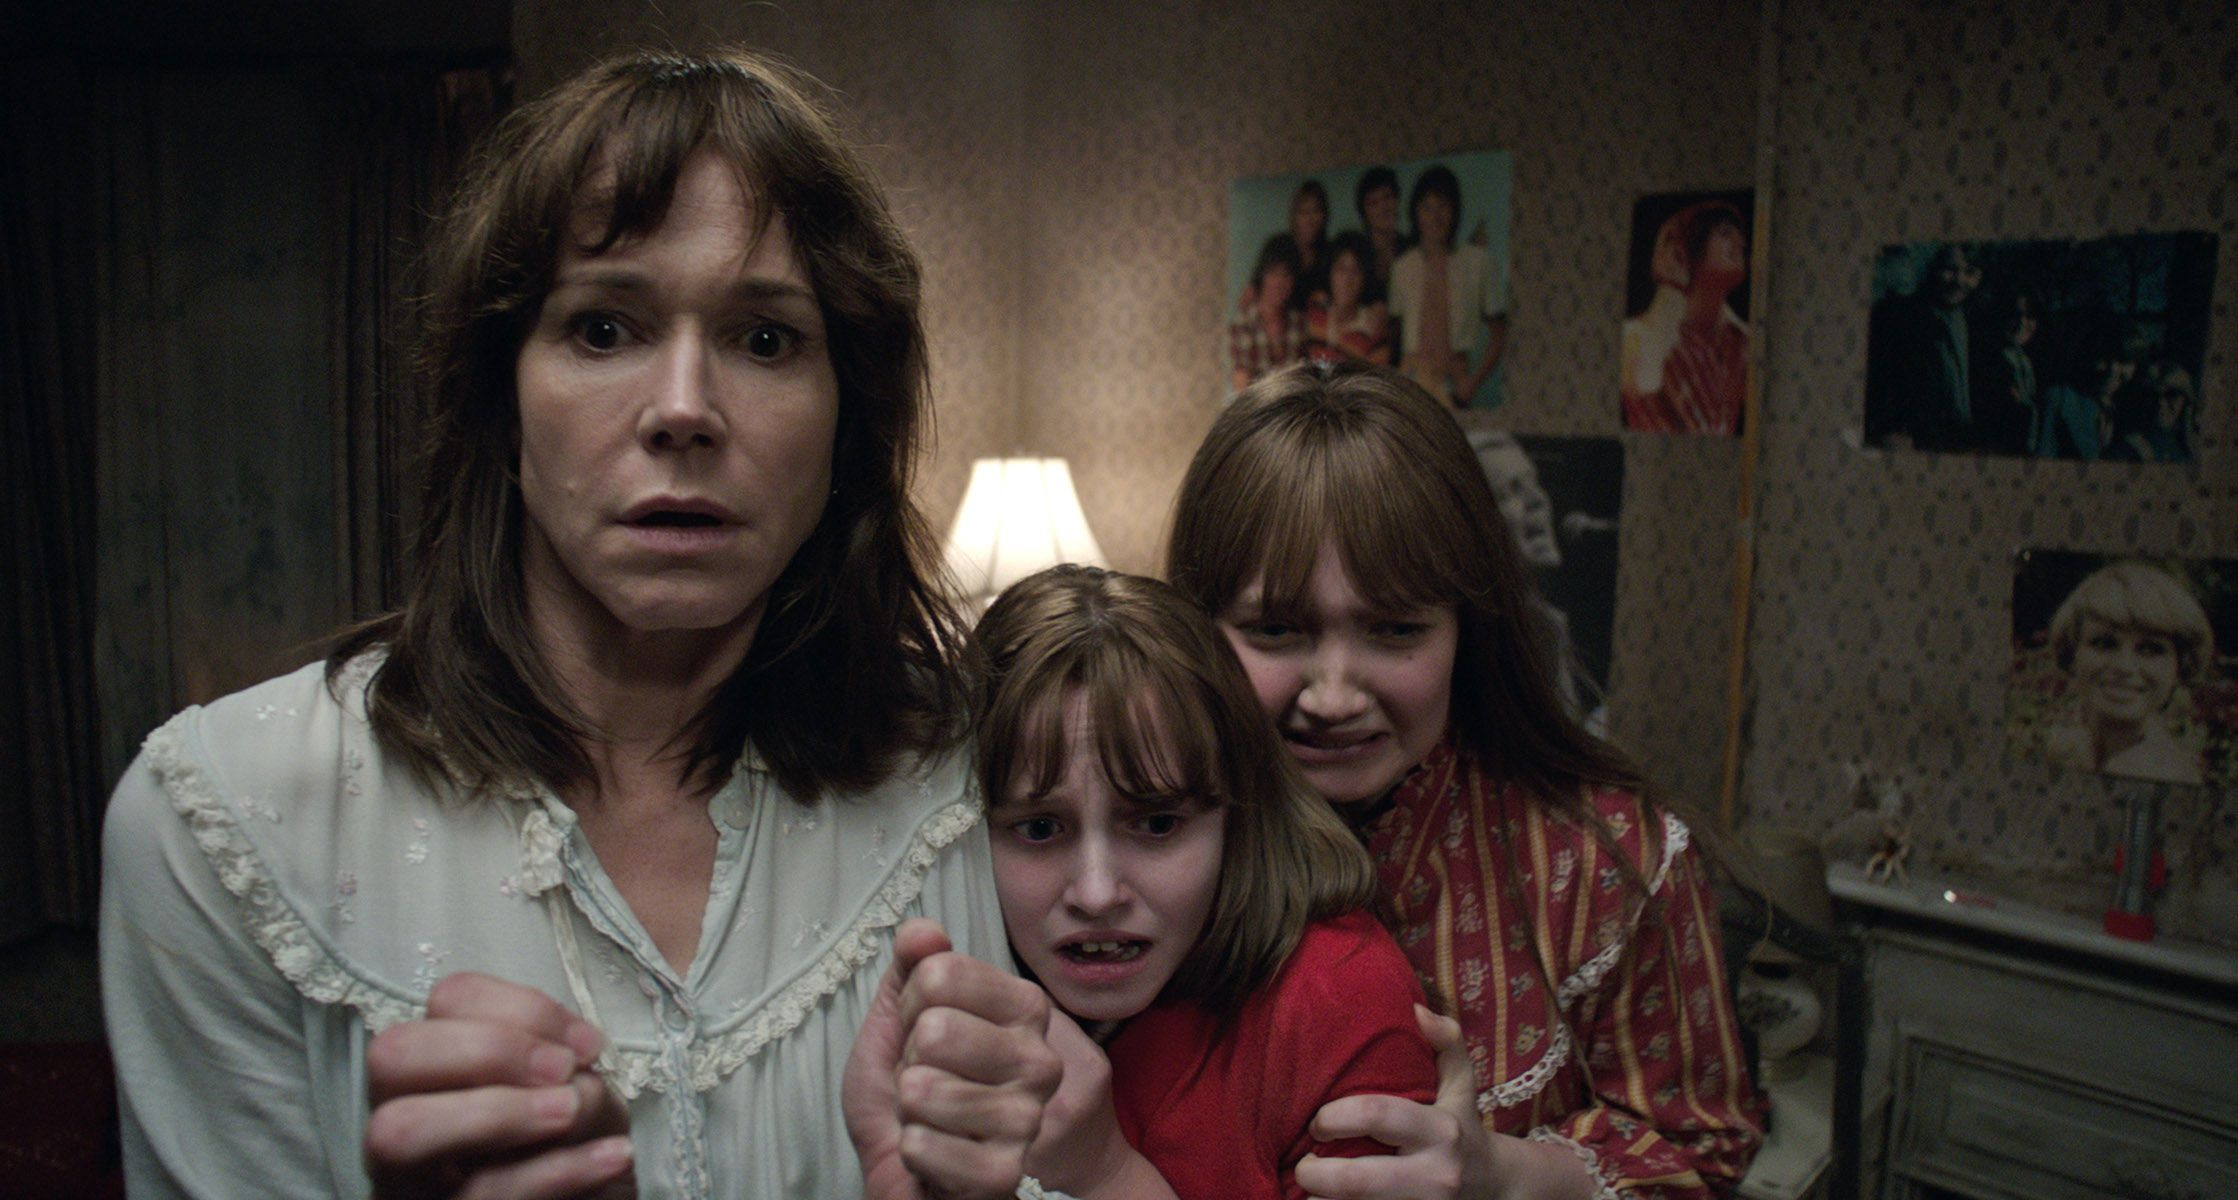 The Conjuring 2 Review Another Stylish Haunting From James Wan